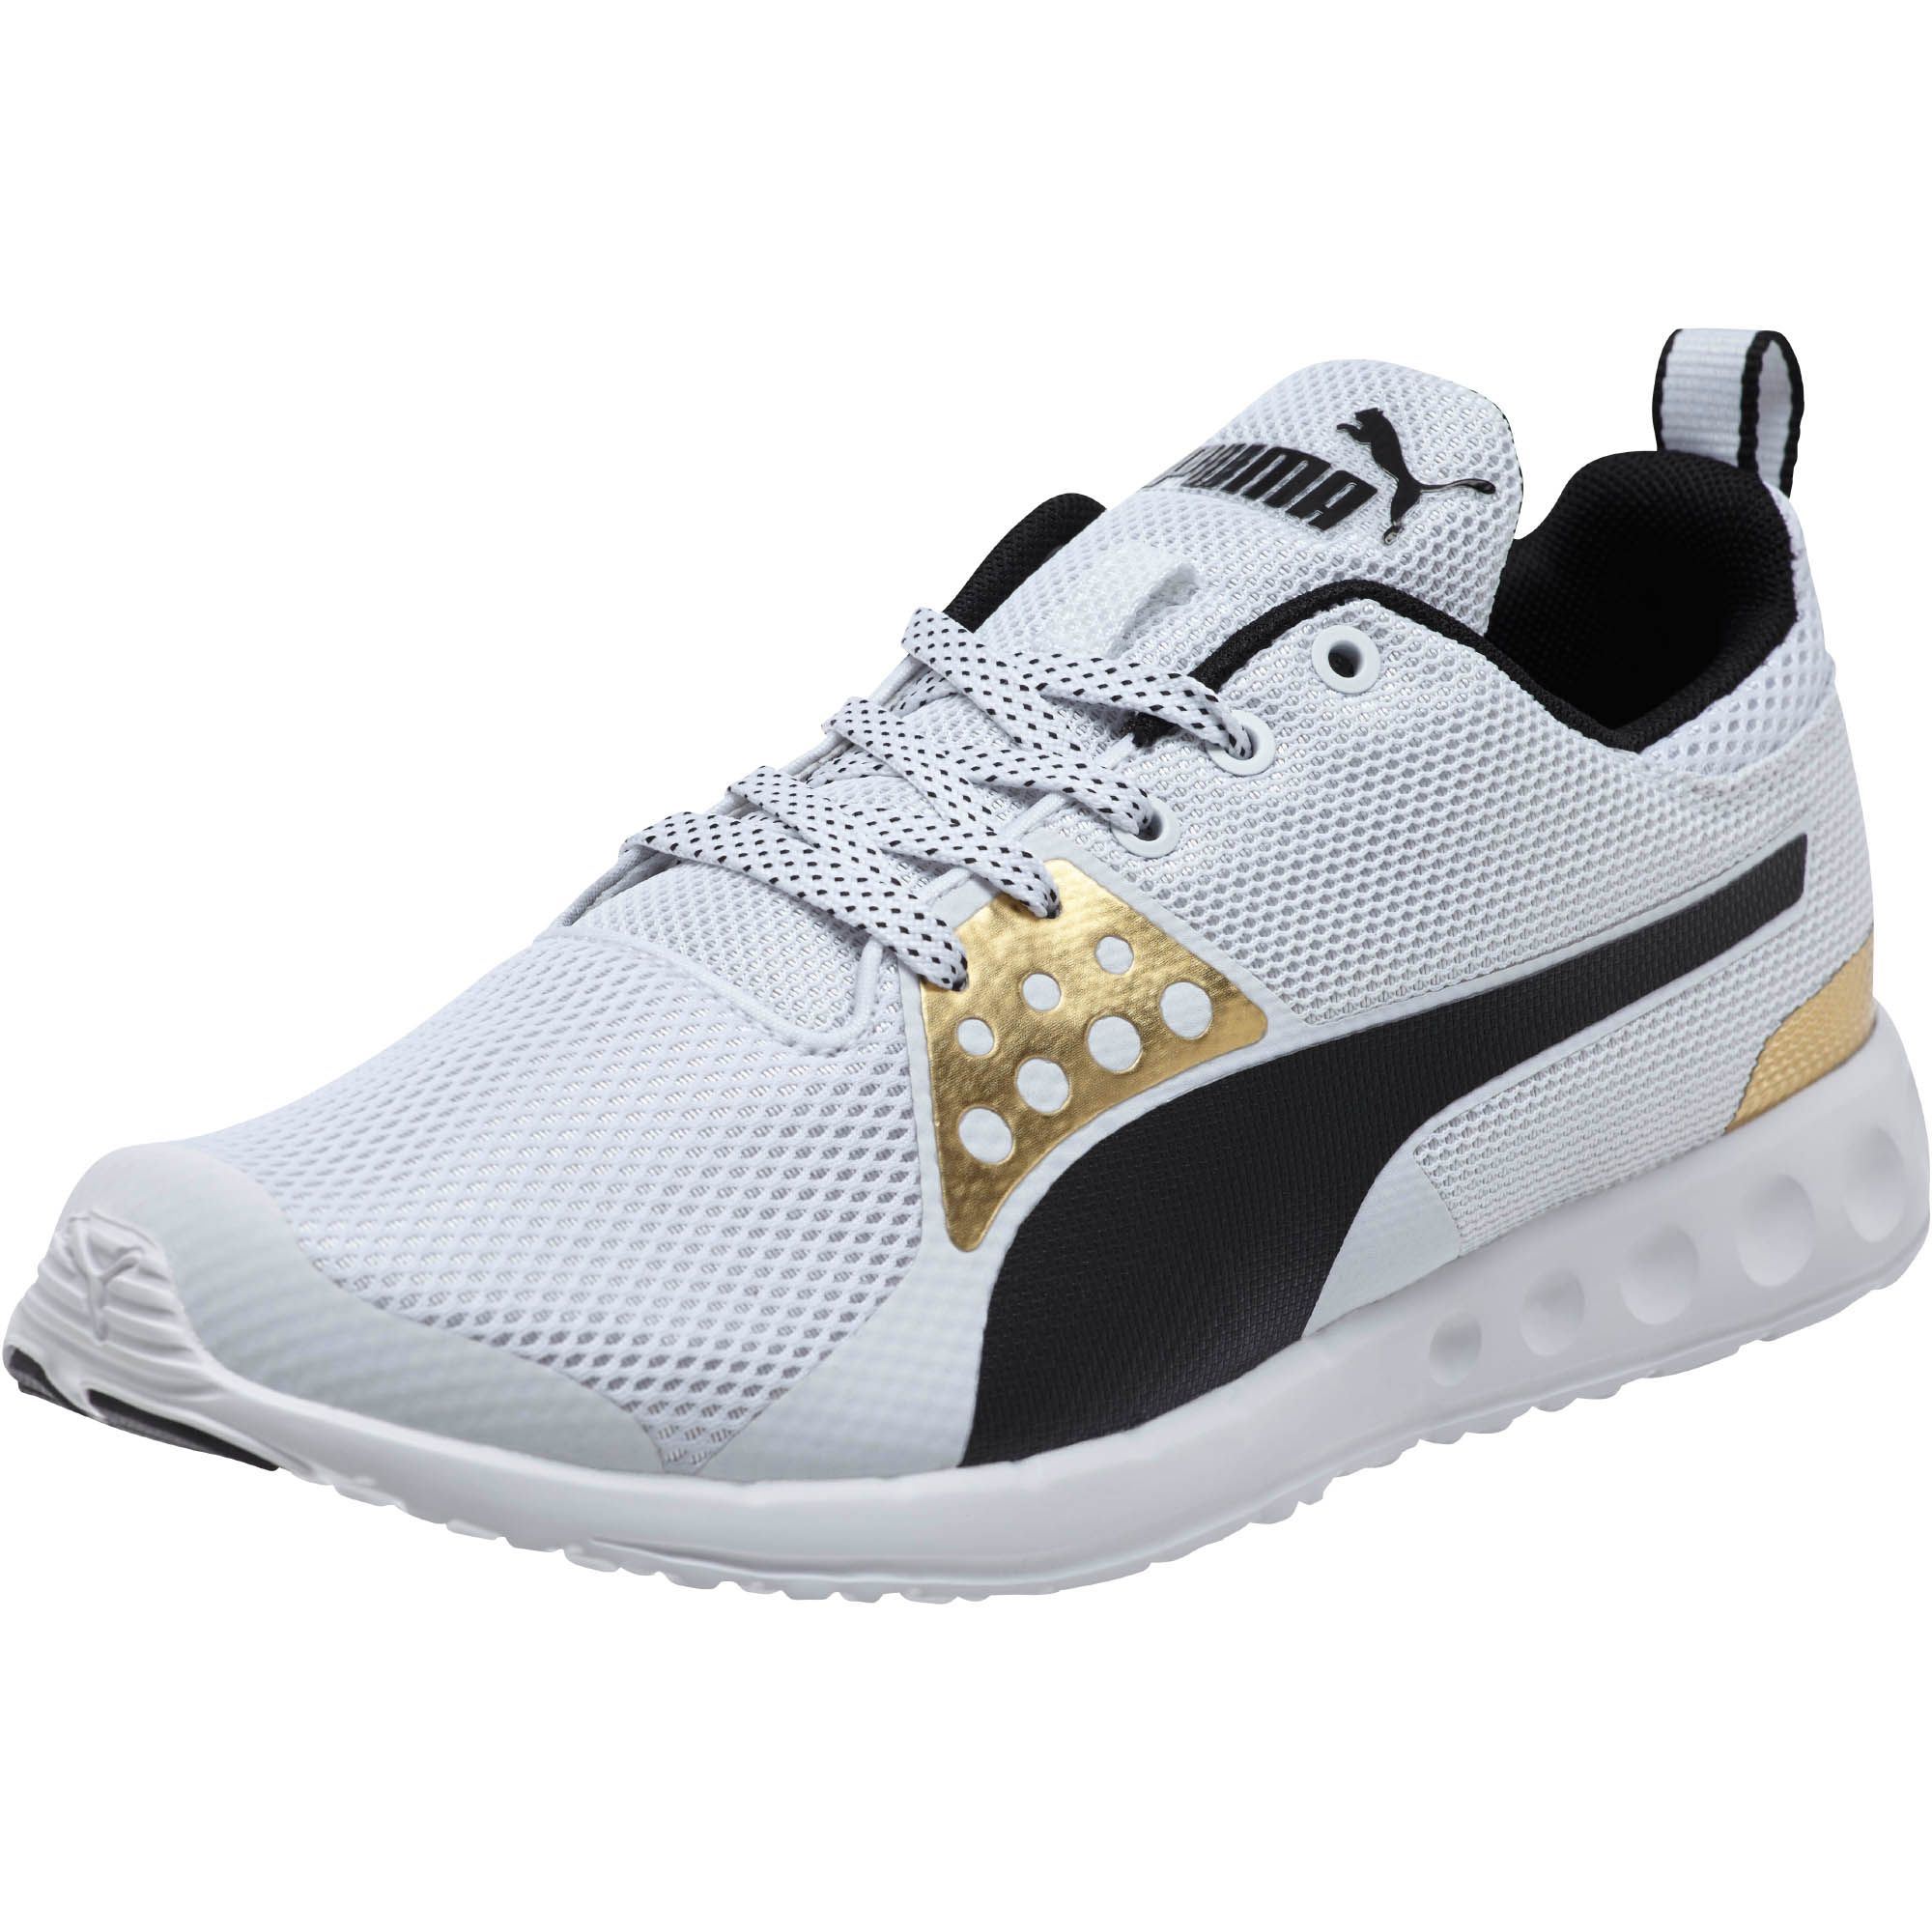 23fe5c3156677a Lyst - PUMA Valor Men s Running Shoes in Metallic for Men